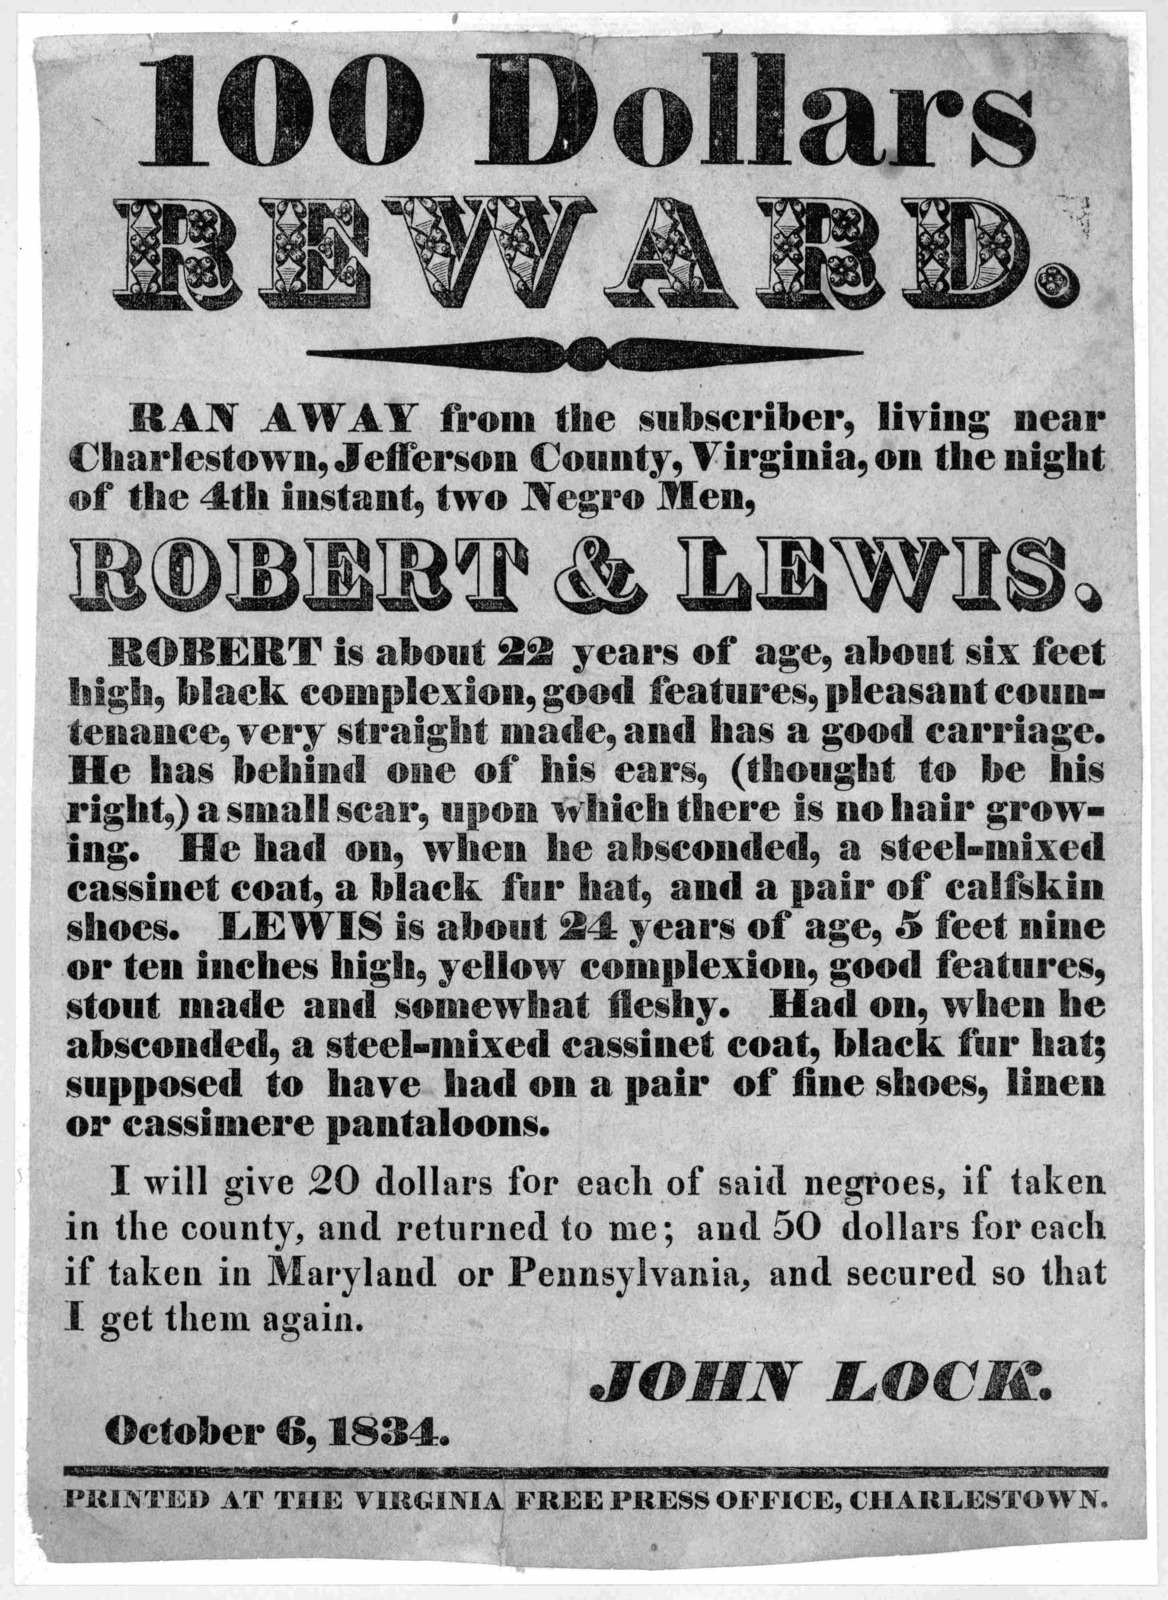 100 dollars reward. Ran away from the subscriber, living near Charlestown, Jefferson County, Virginia, on the night of the 4th instant two negro men Robert & Lewis ... John Lock. October 6, 1834. Charlestown: Printed at the Virginia Free Press O